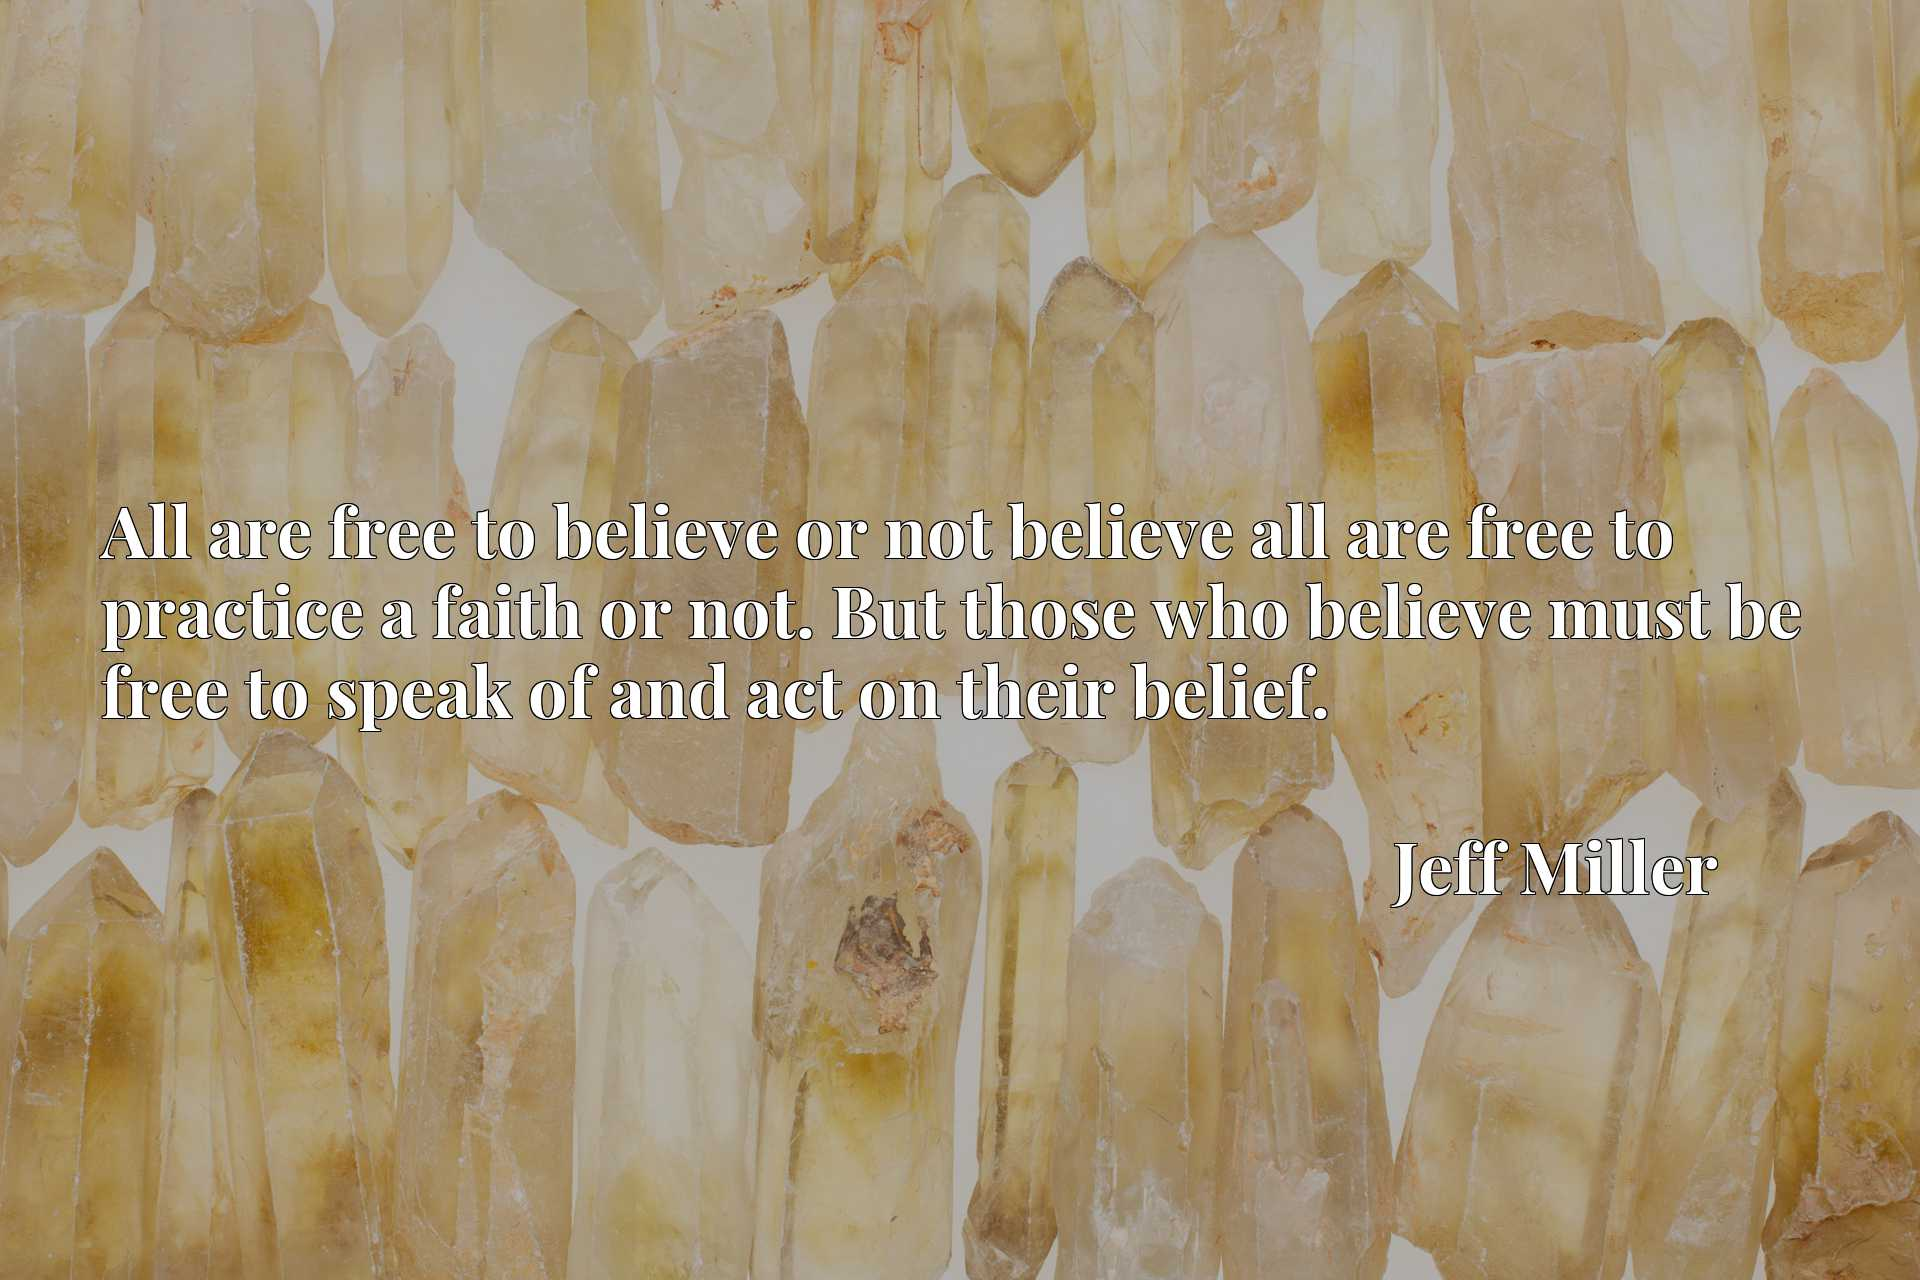 All are free to believe or not believe all are free to practice a faith or not. But those who believe must be free to speak of and act on their belief.